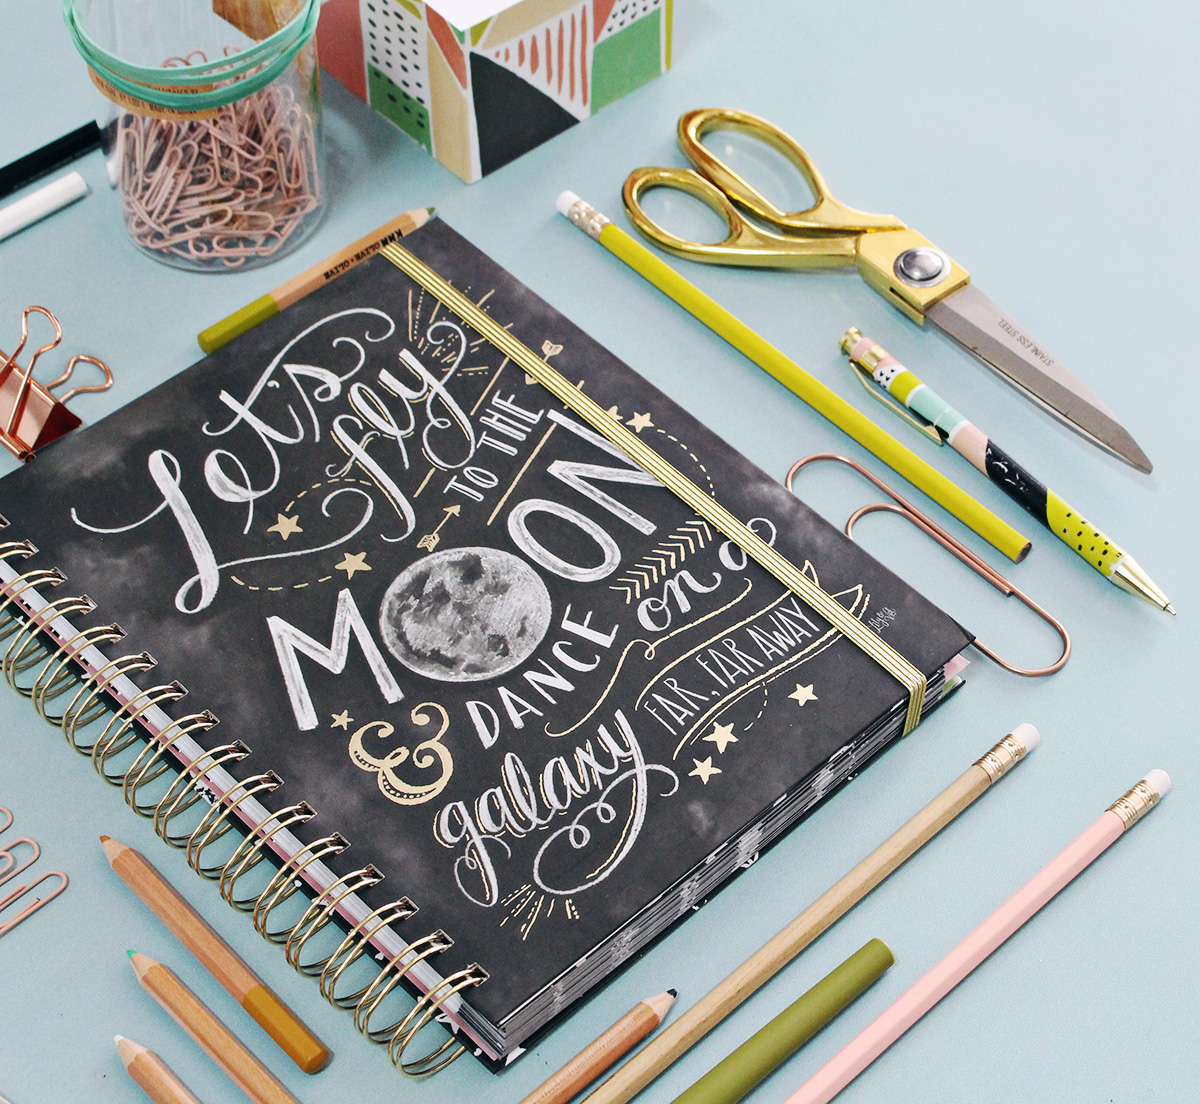 2018 agenda planner featuring hand-drawn chalk art by Valerie McKeehan and gold foil details